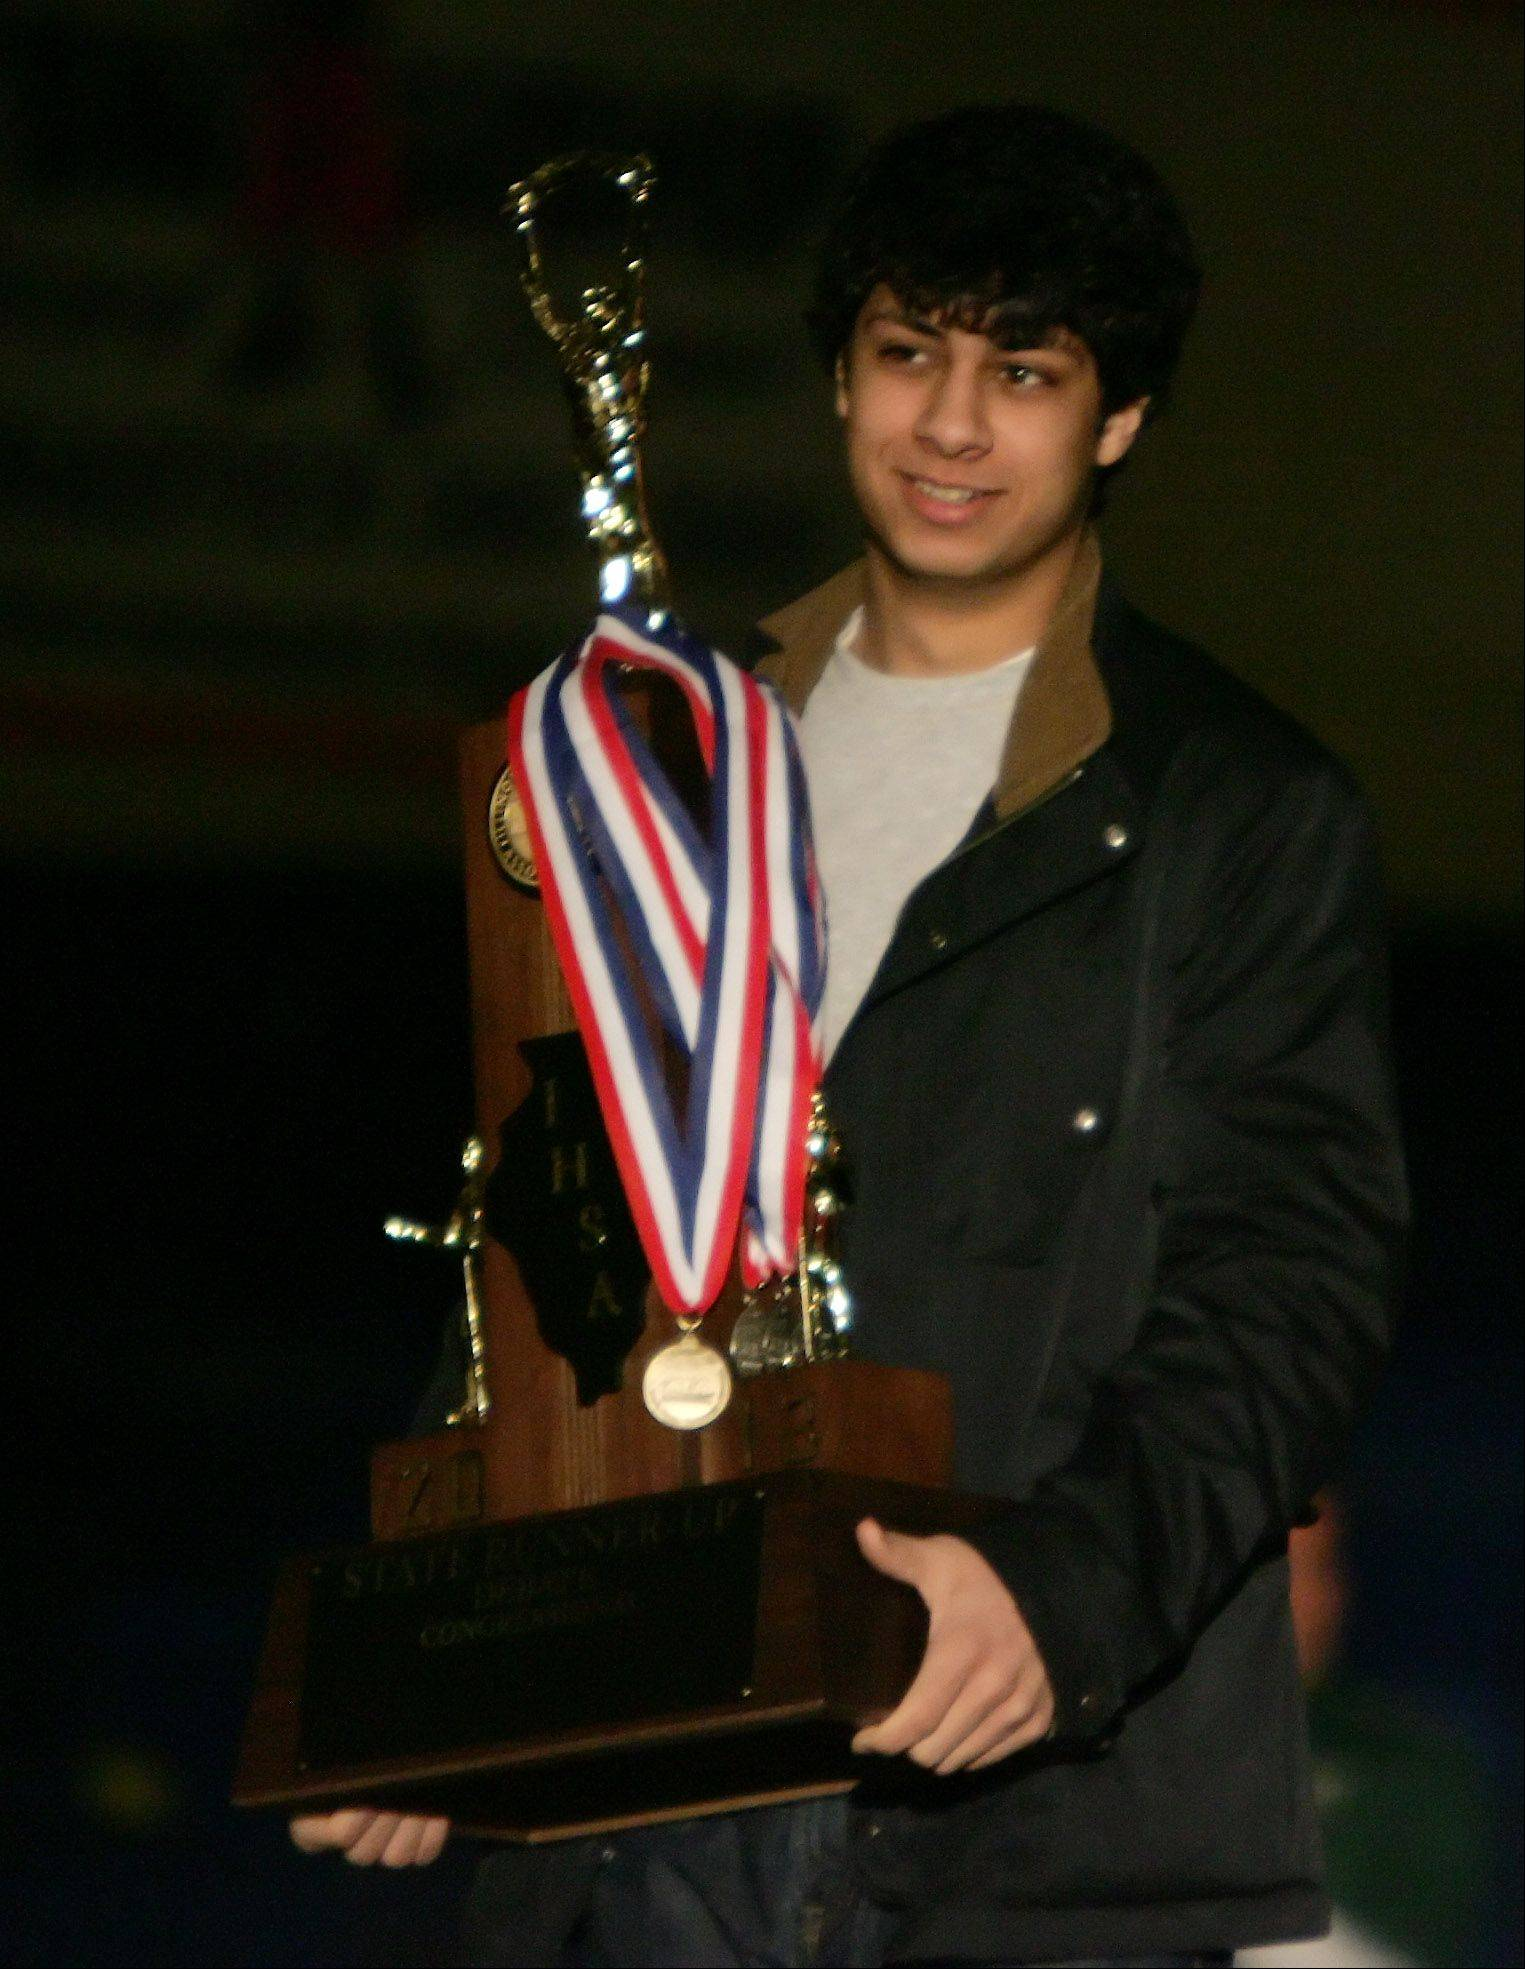 Stevenson High School's Eric Ramoutar holds the second place trophy he won in Congressional debate during a Monday celebration at the school. The team competed in the state IHSA debate tournament at Illinois Wesleyan University in Bloomington.